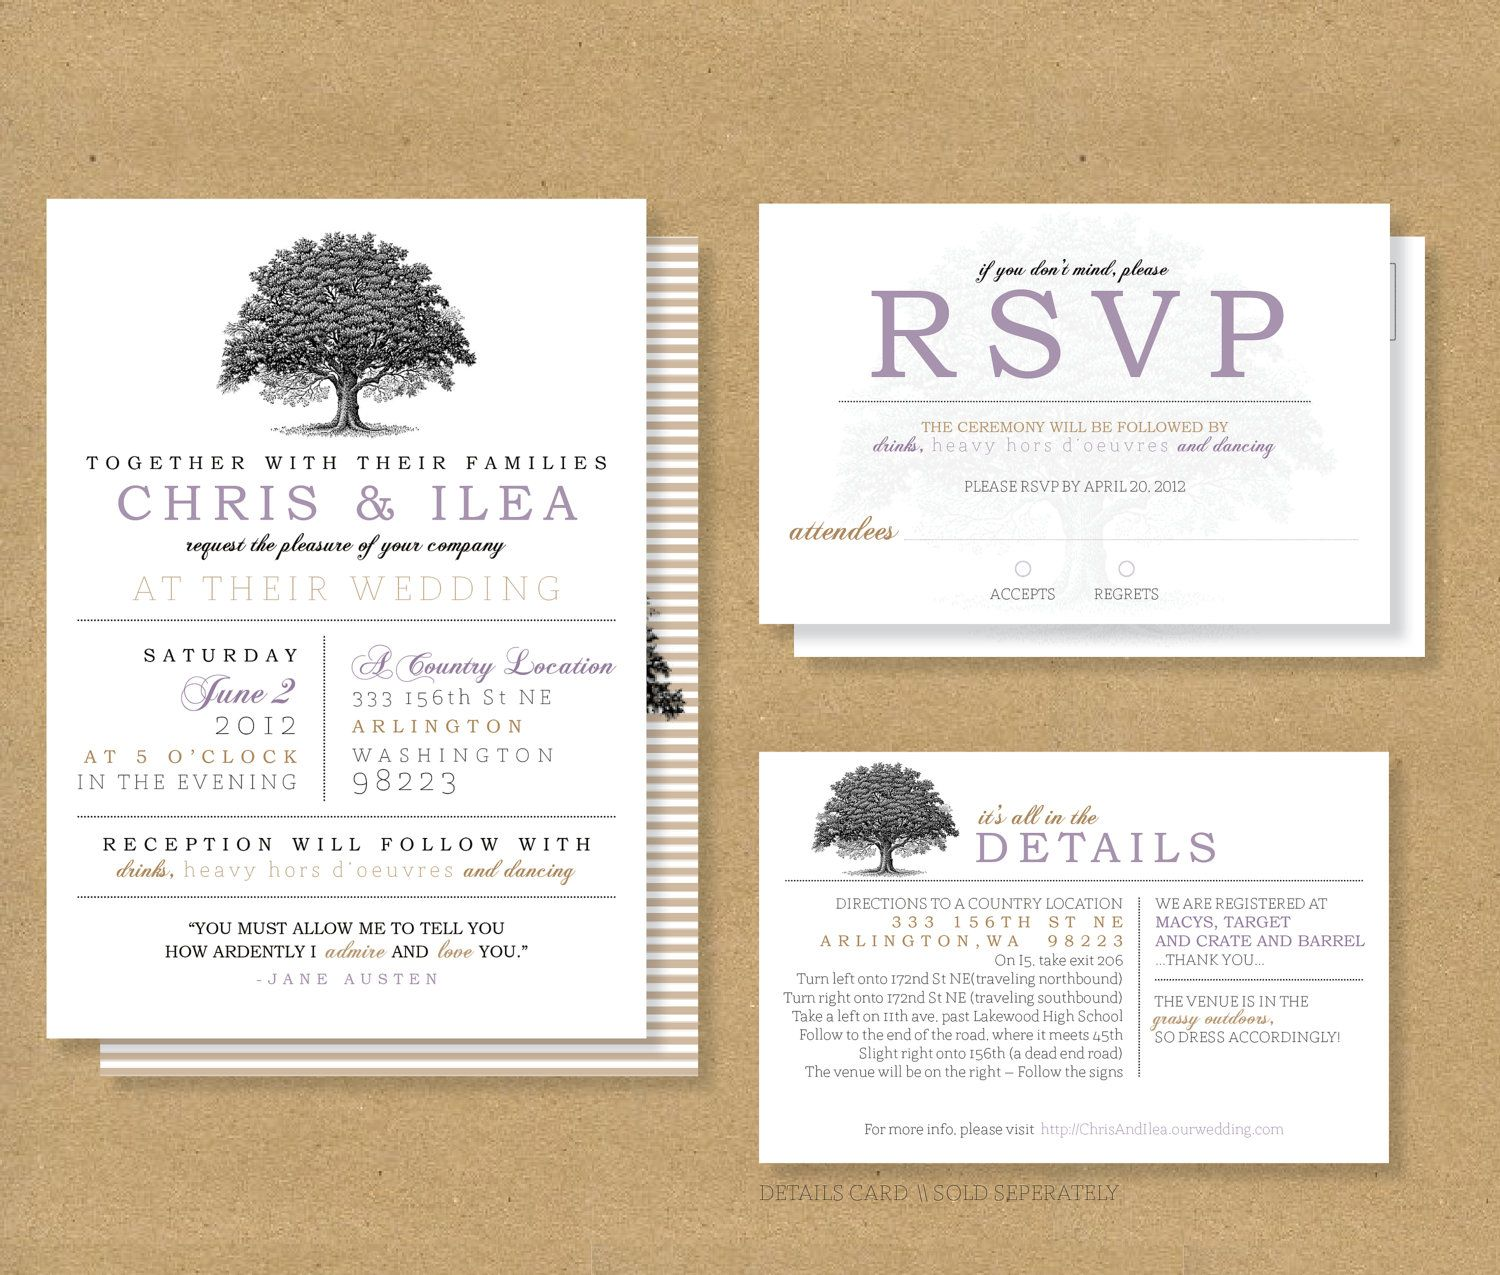 wedding invitationwedding rsvp wording samples tips With wedding invitation and rsvp wording samples